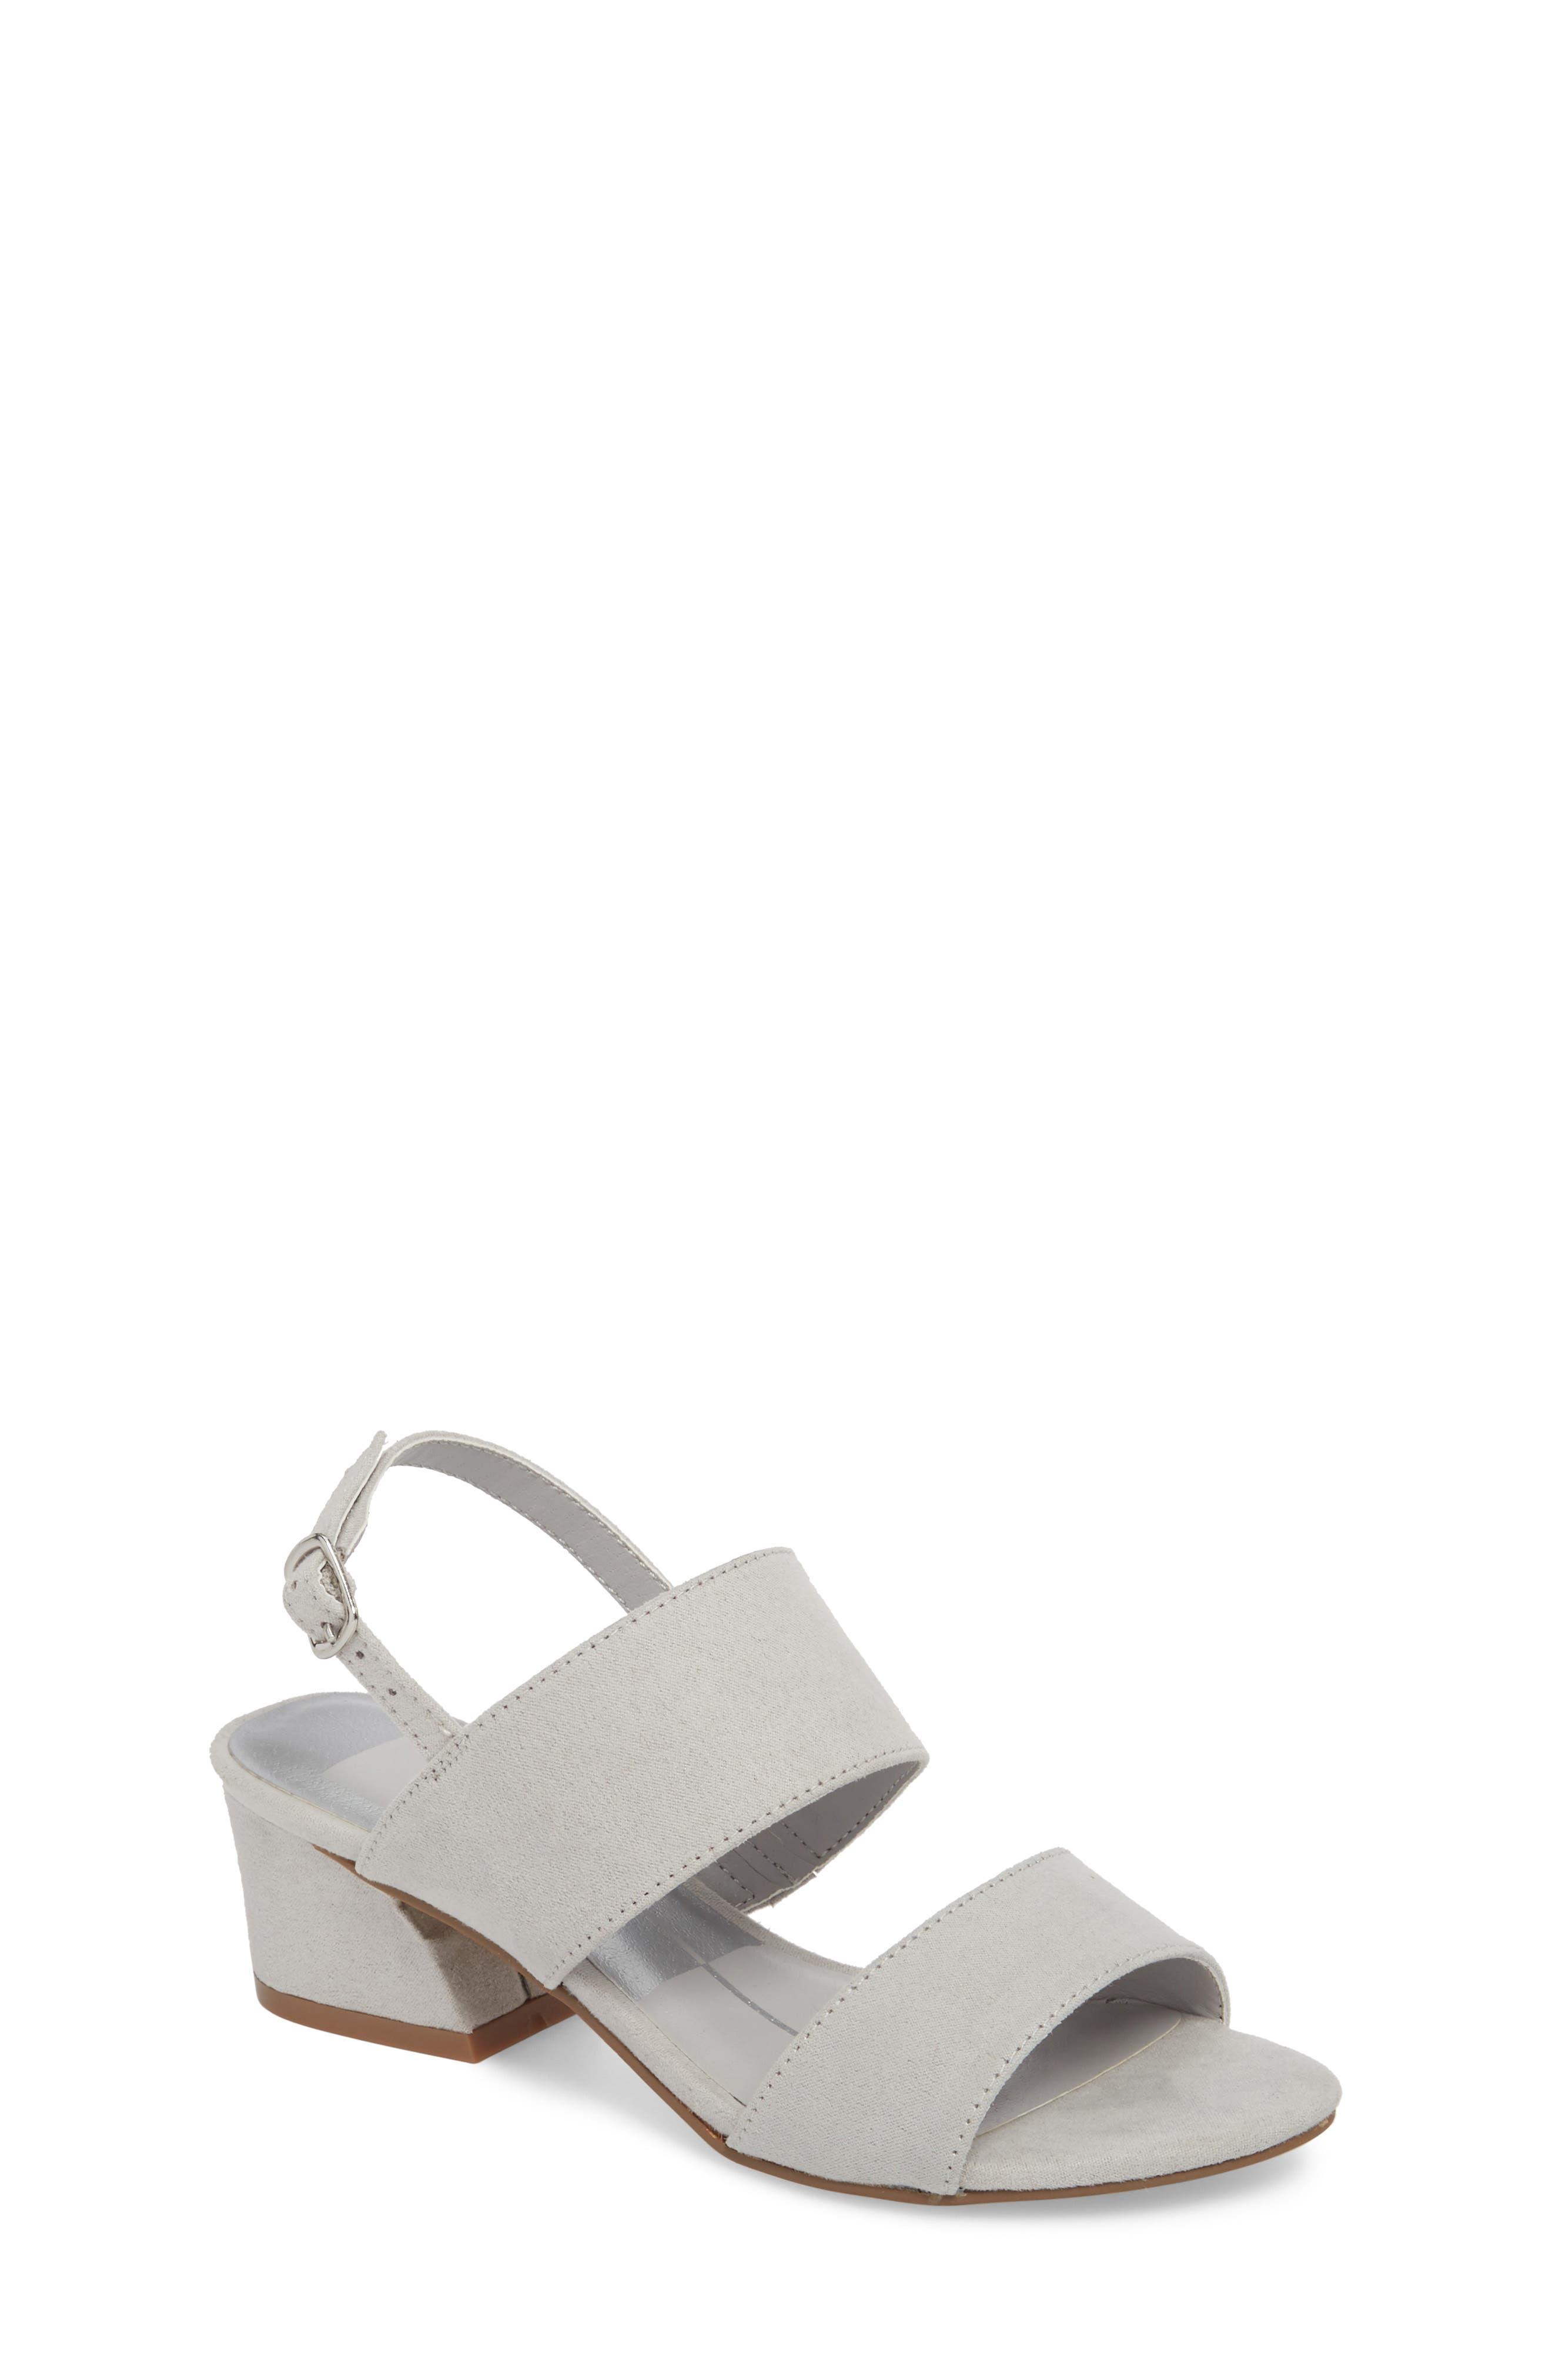 Dolce Vita Lorne Flared Heel Sandal (Toddler, Little Kid & Big Kid)